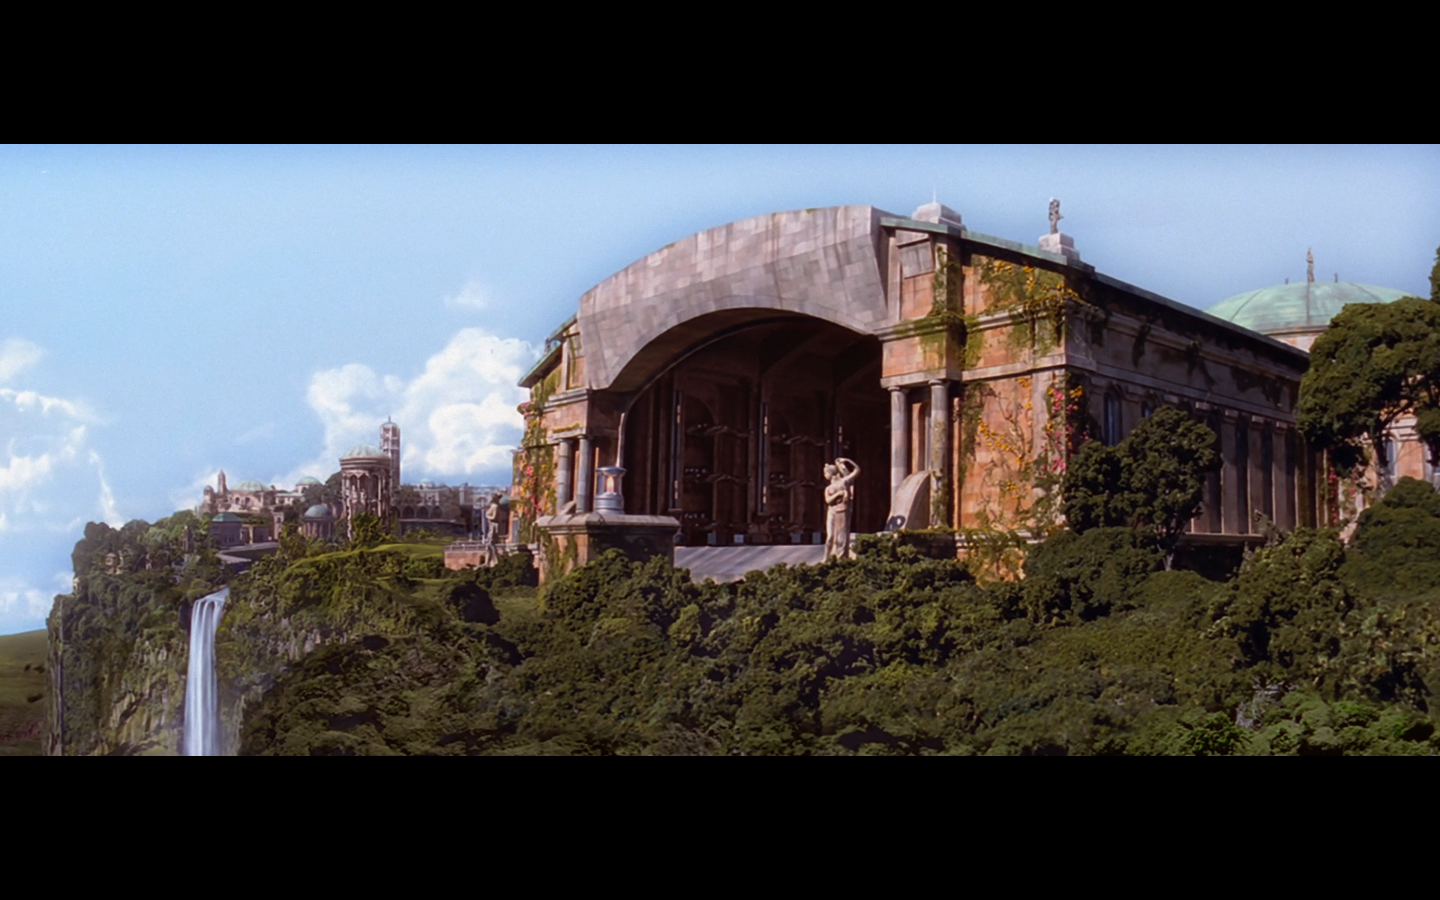 Star Wars Episode 1 and Battlefront 2 Comparison of the Theed ...